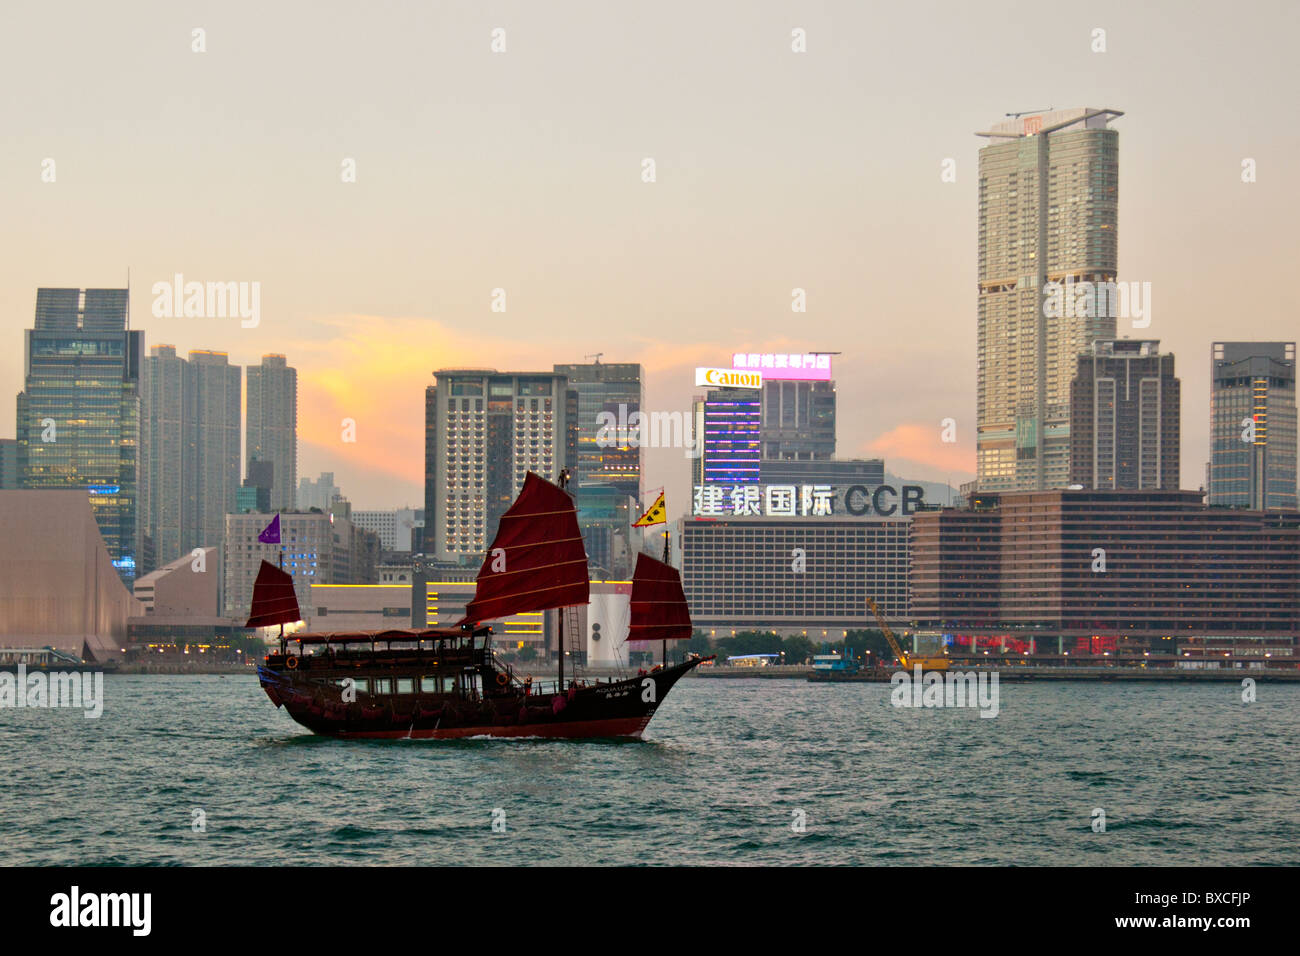 Hong Kong Junk Trips, on Victoria Harbour harbor with Kowloon skyline in the background iconic sight - Stock Image